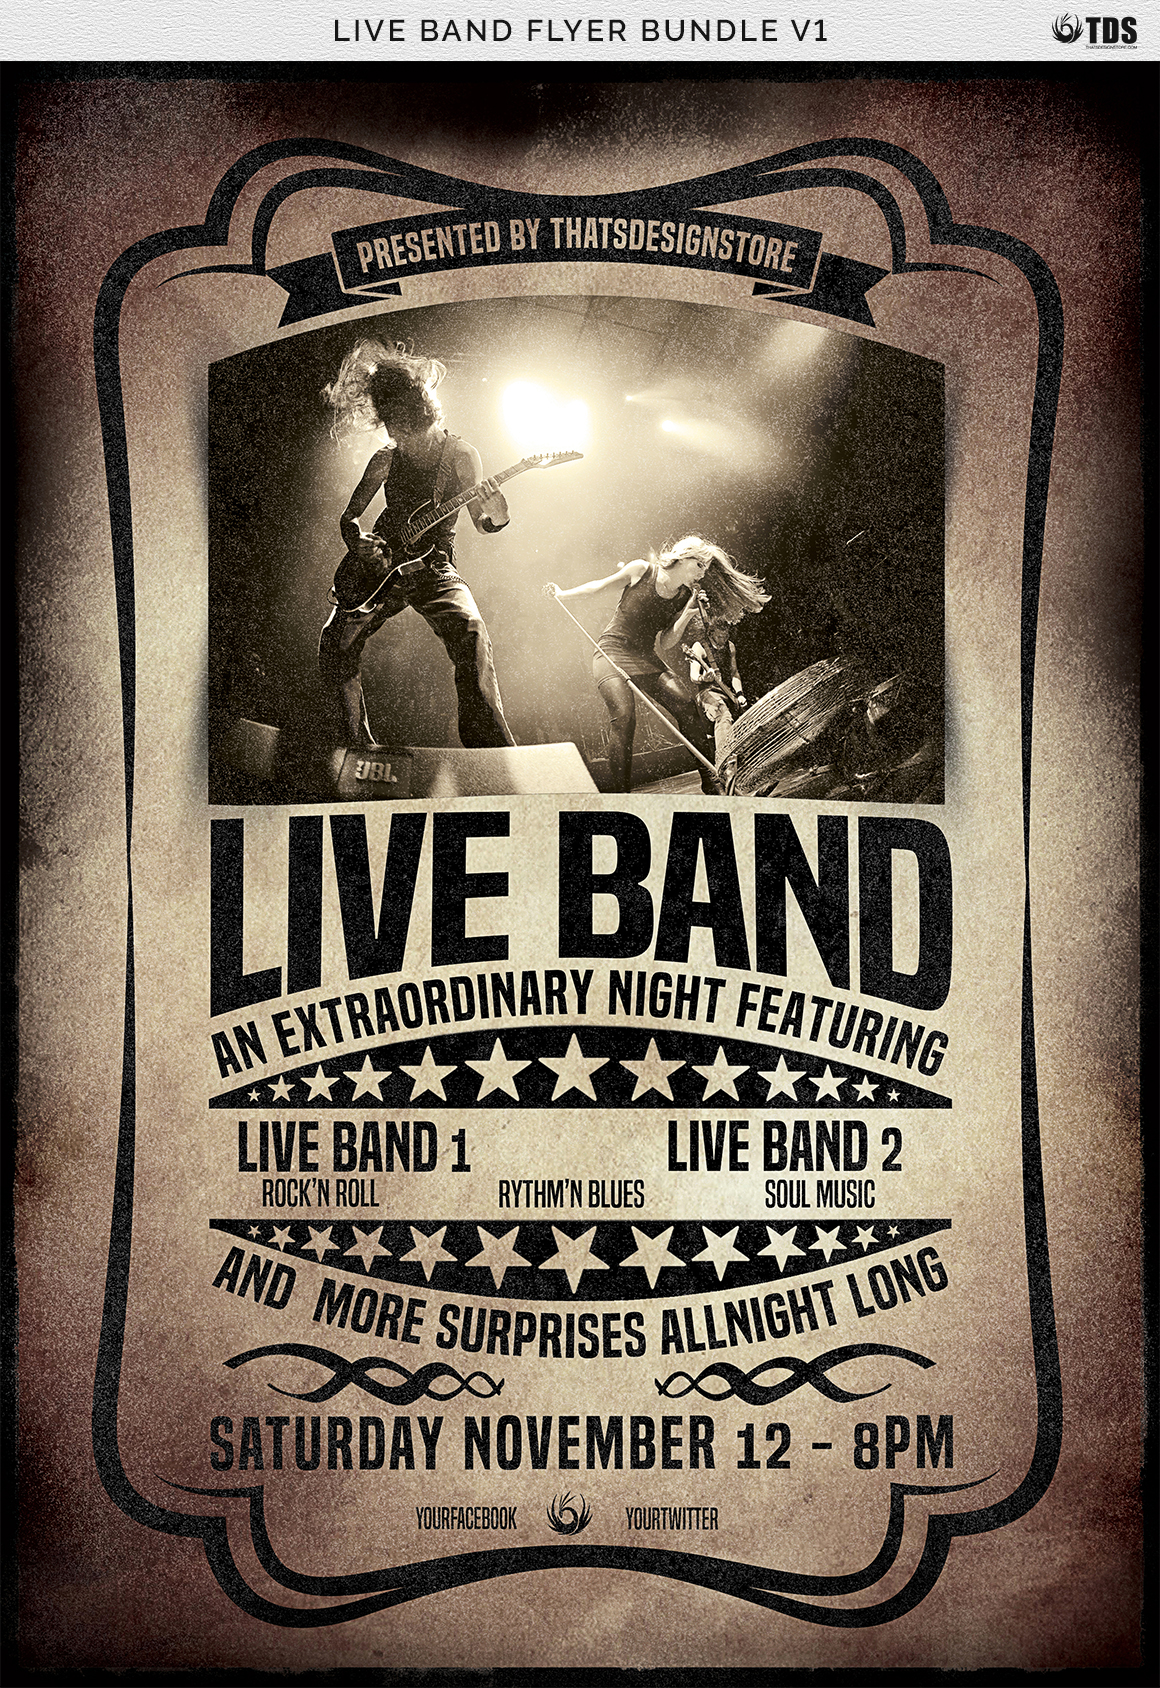 Live Band Flyer Bundle V1 example image 8